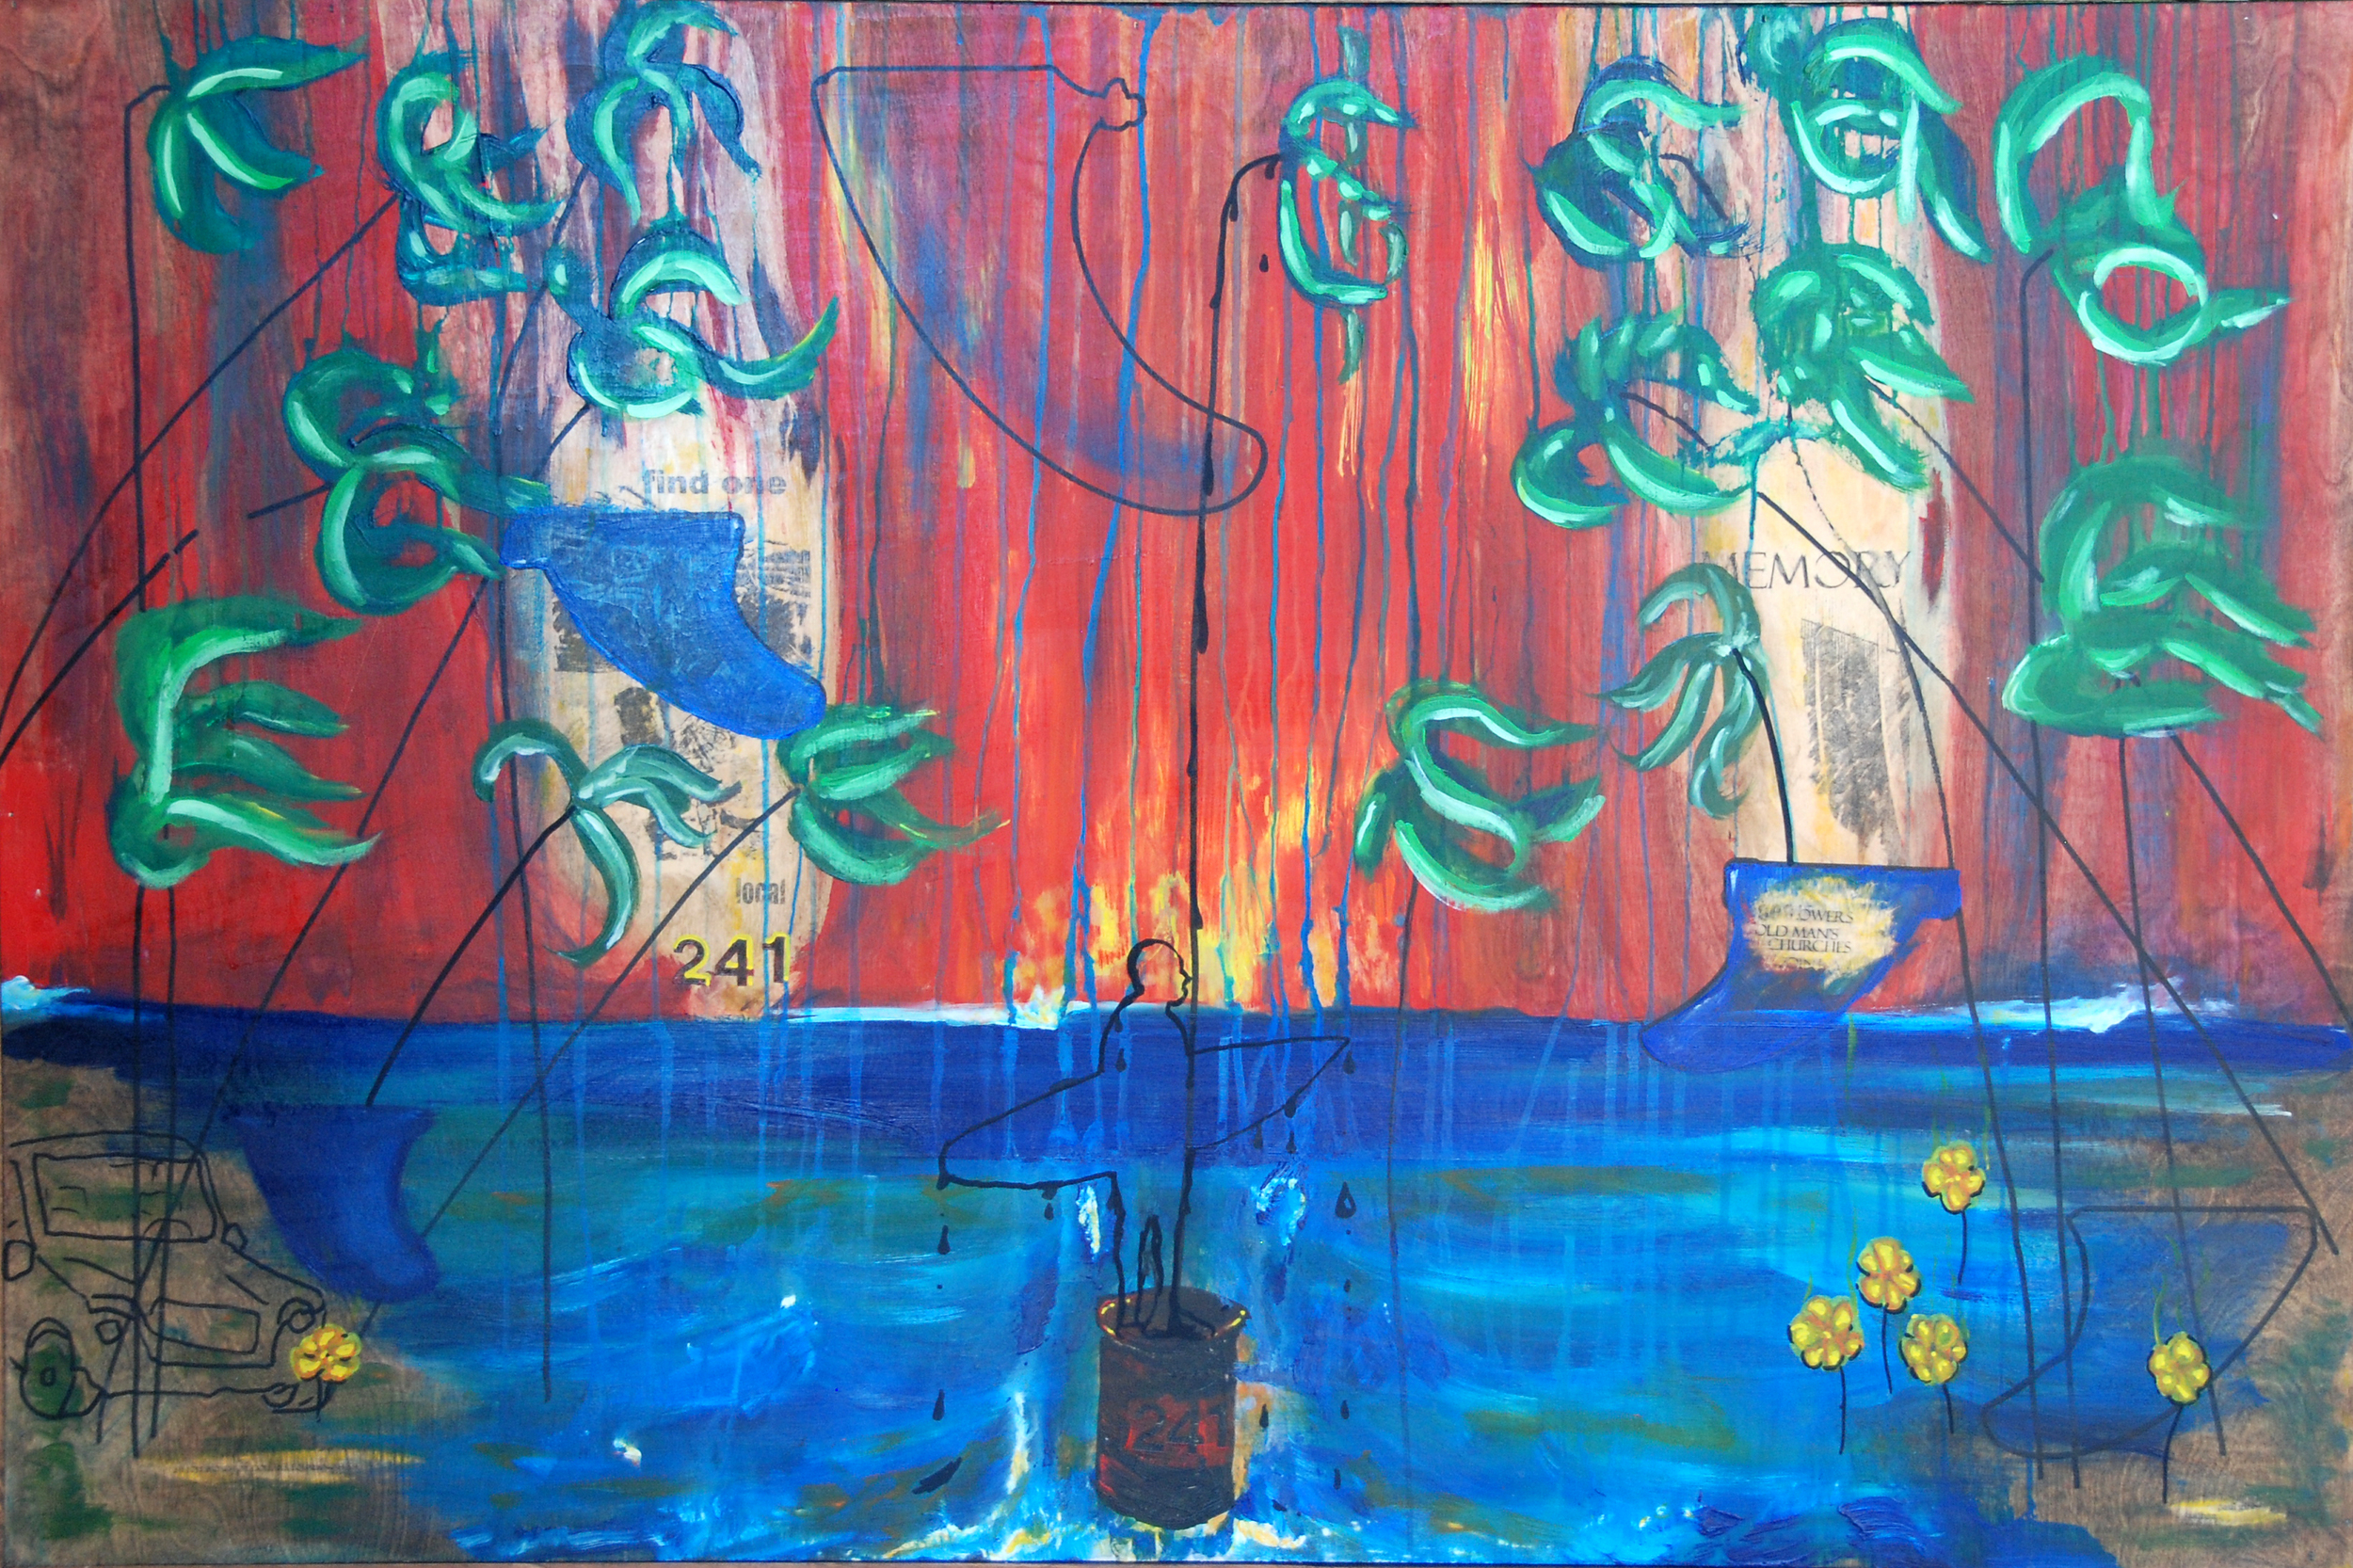 Find one Memory see imperfection - mixed media on wood panel.jpg